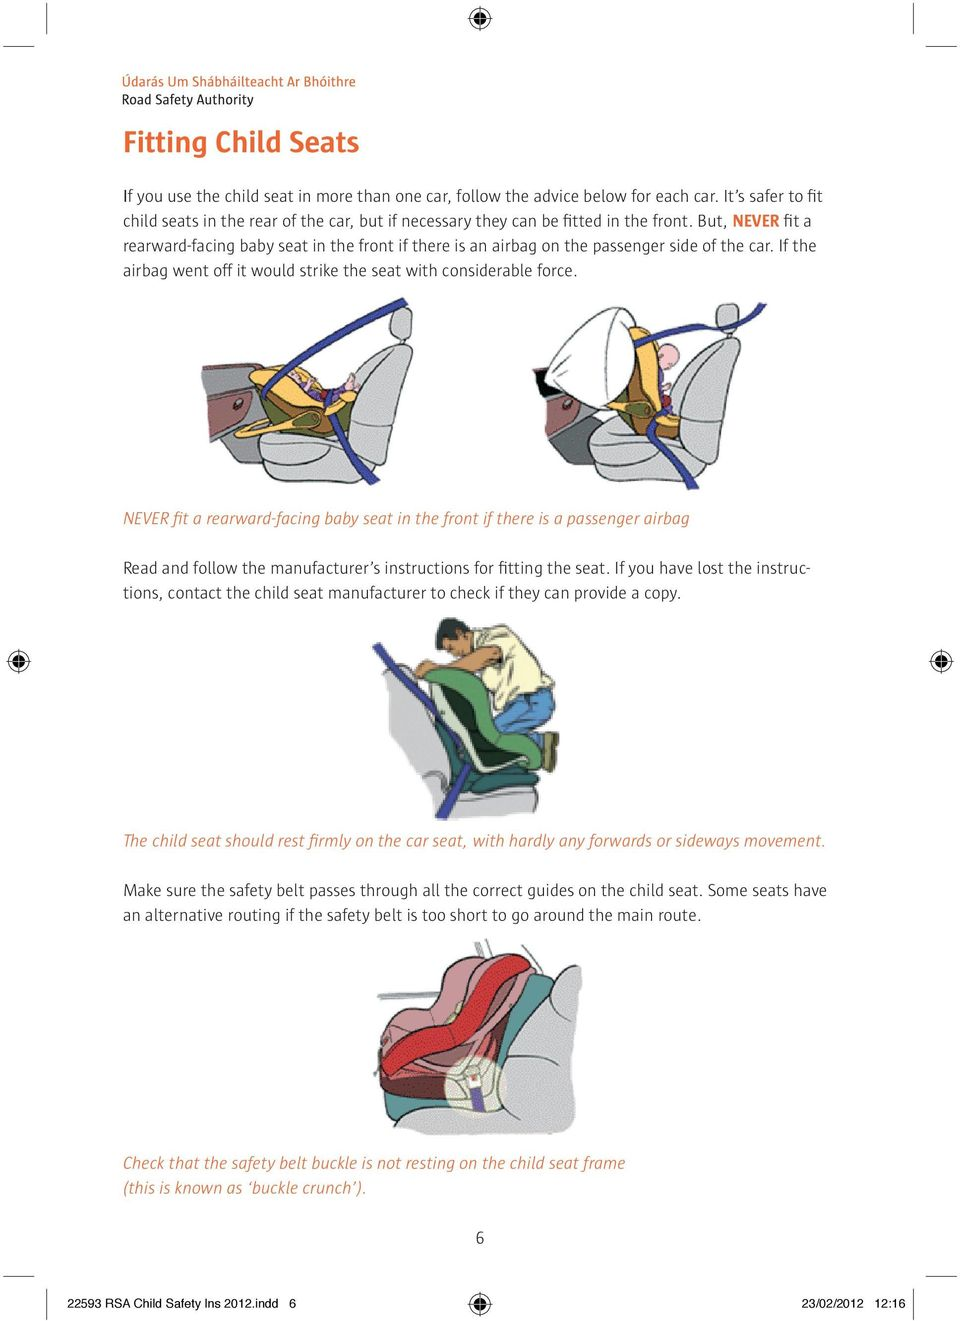 But, NEVER fit a rearward-facing baby seat in the front if there is an airbag on the passenger side of the car. If the airbag went off it would strike the seat with considerable force.